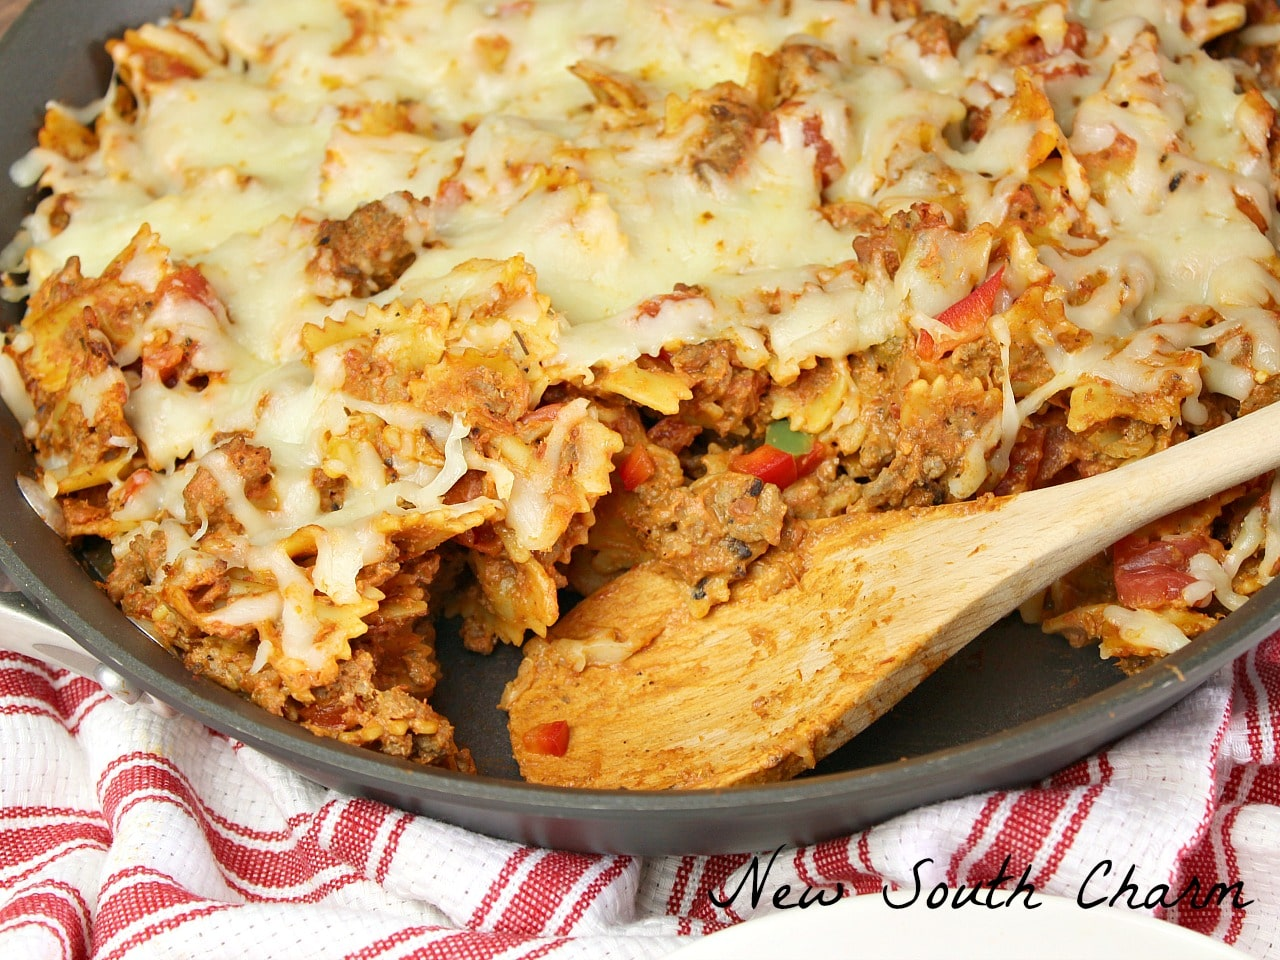 Easy Skillet Lasagna takes 30 minutes and cooks in one skillet making dinner a snap.